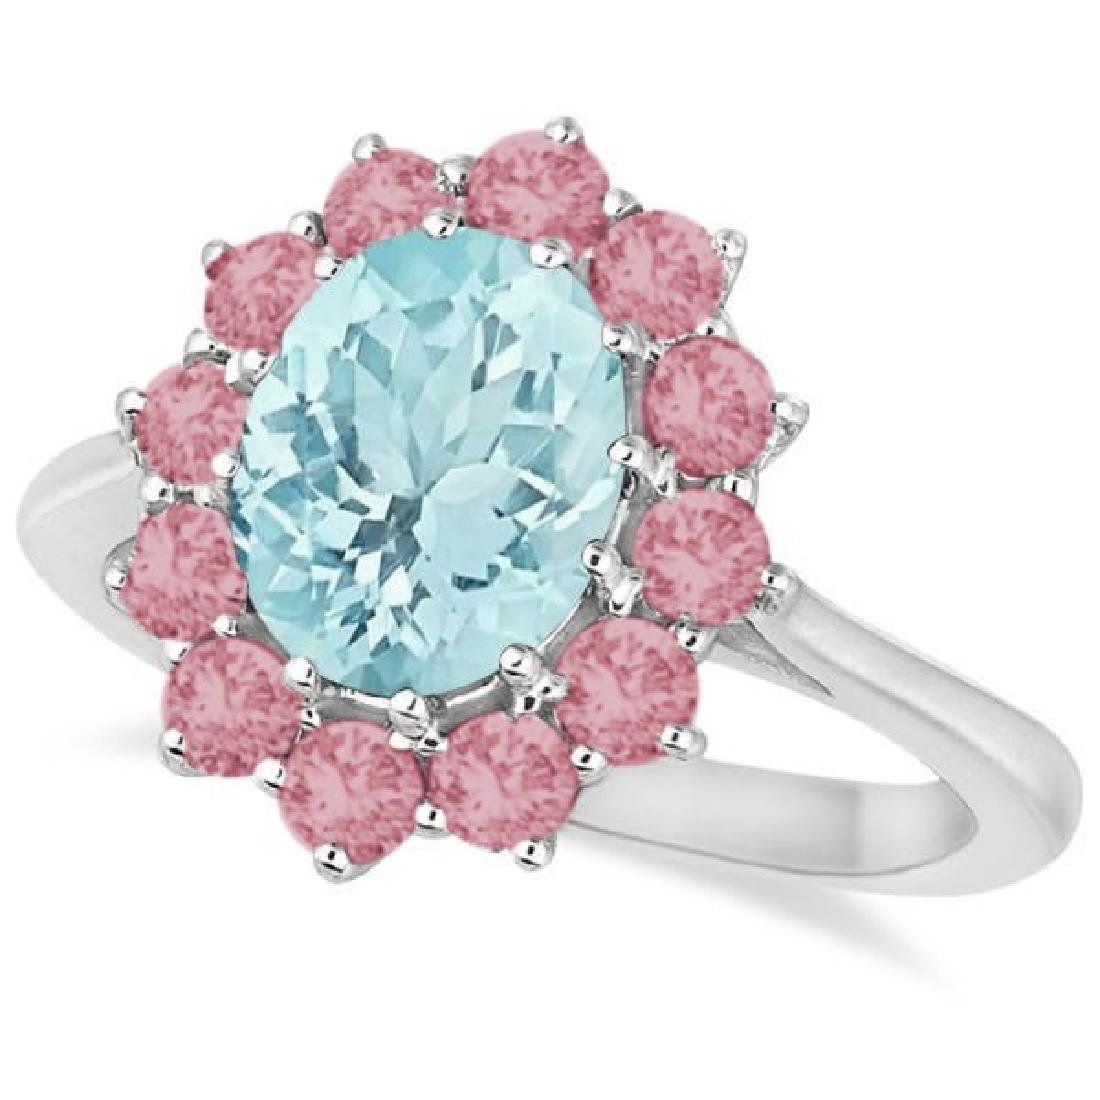 Oval Aquamarine and Pink Tourmaline Accented Ring in 14